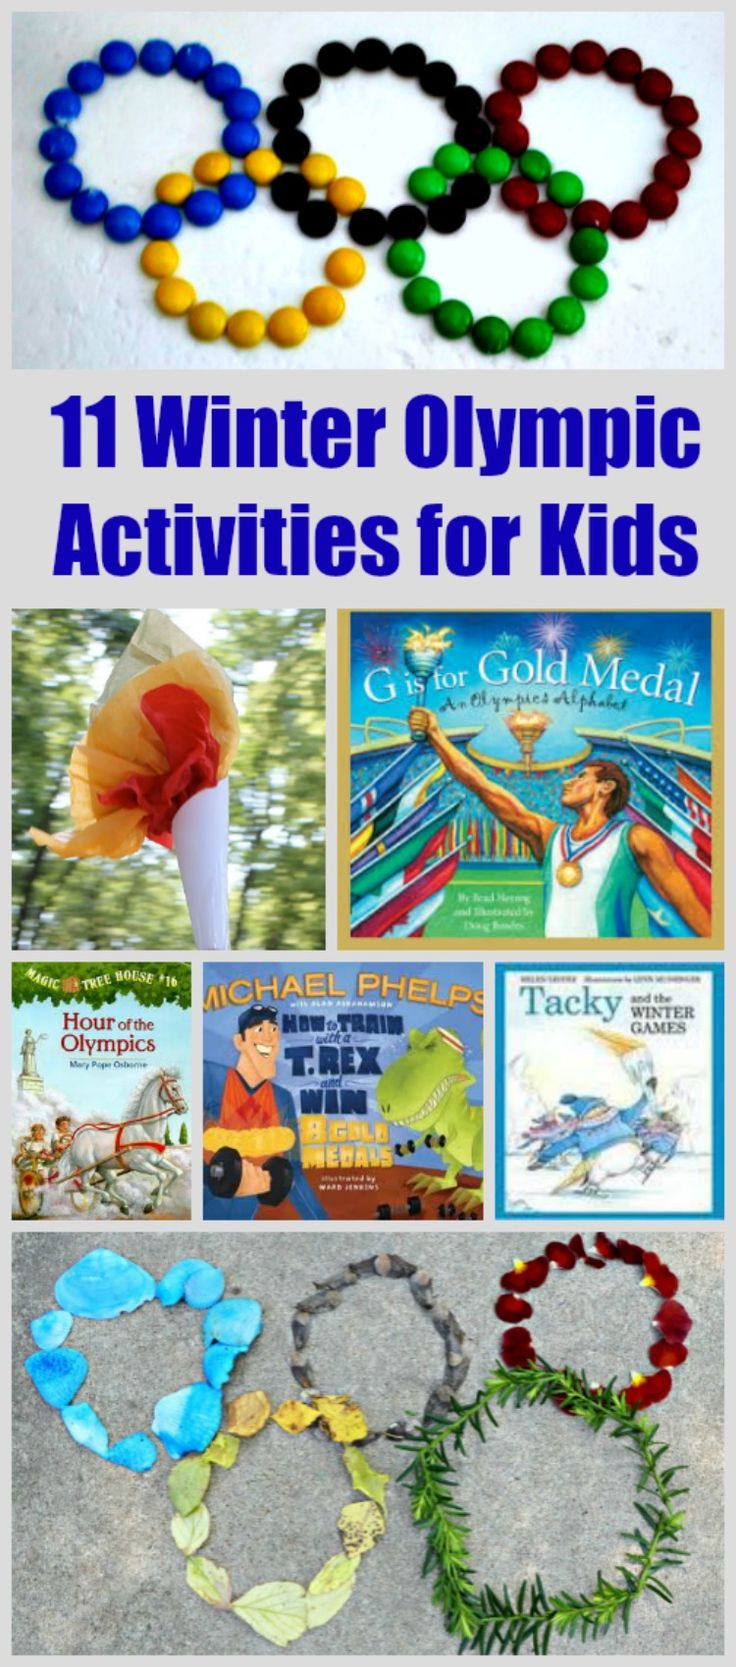 11 Winter Olympic Activities for Kids | 2018 Winter Games - Edventures with Kids #olympics #games #2018